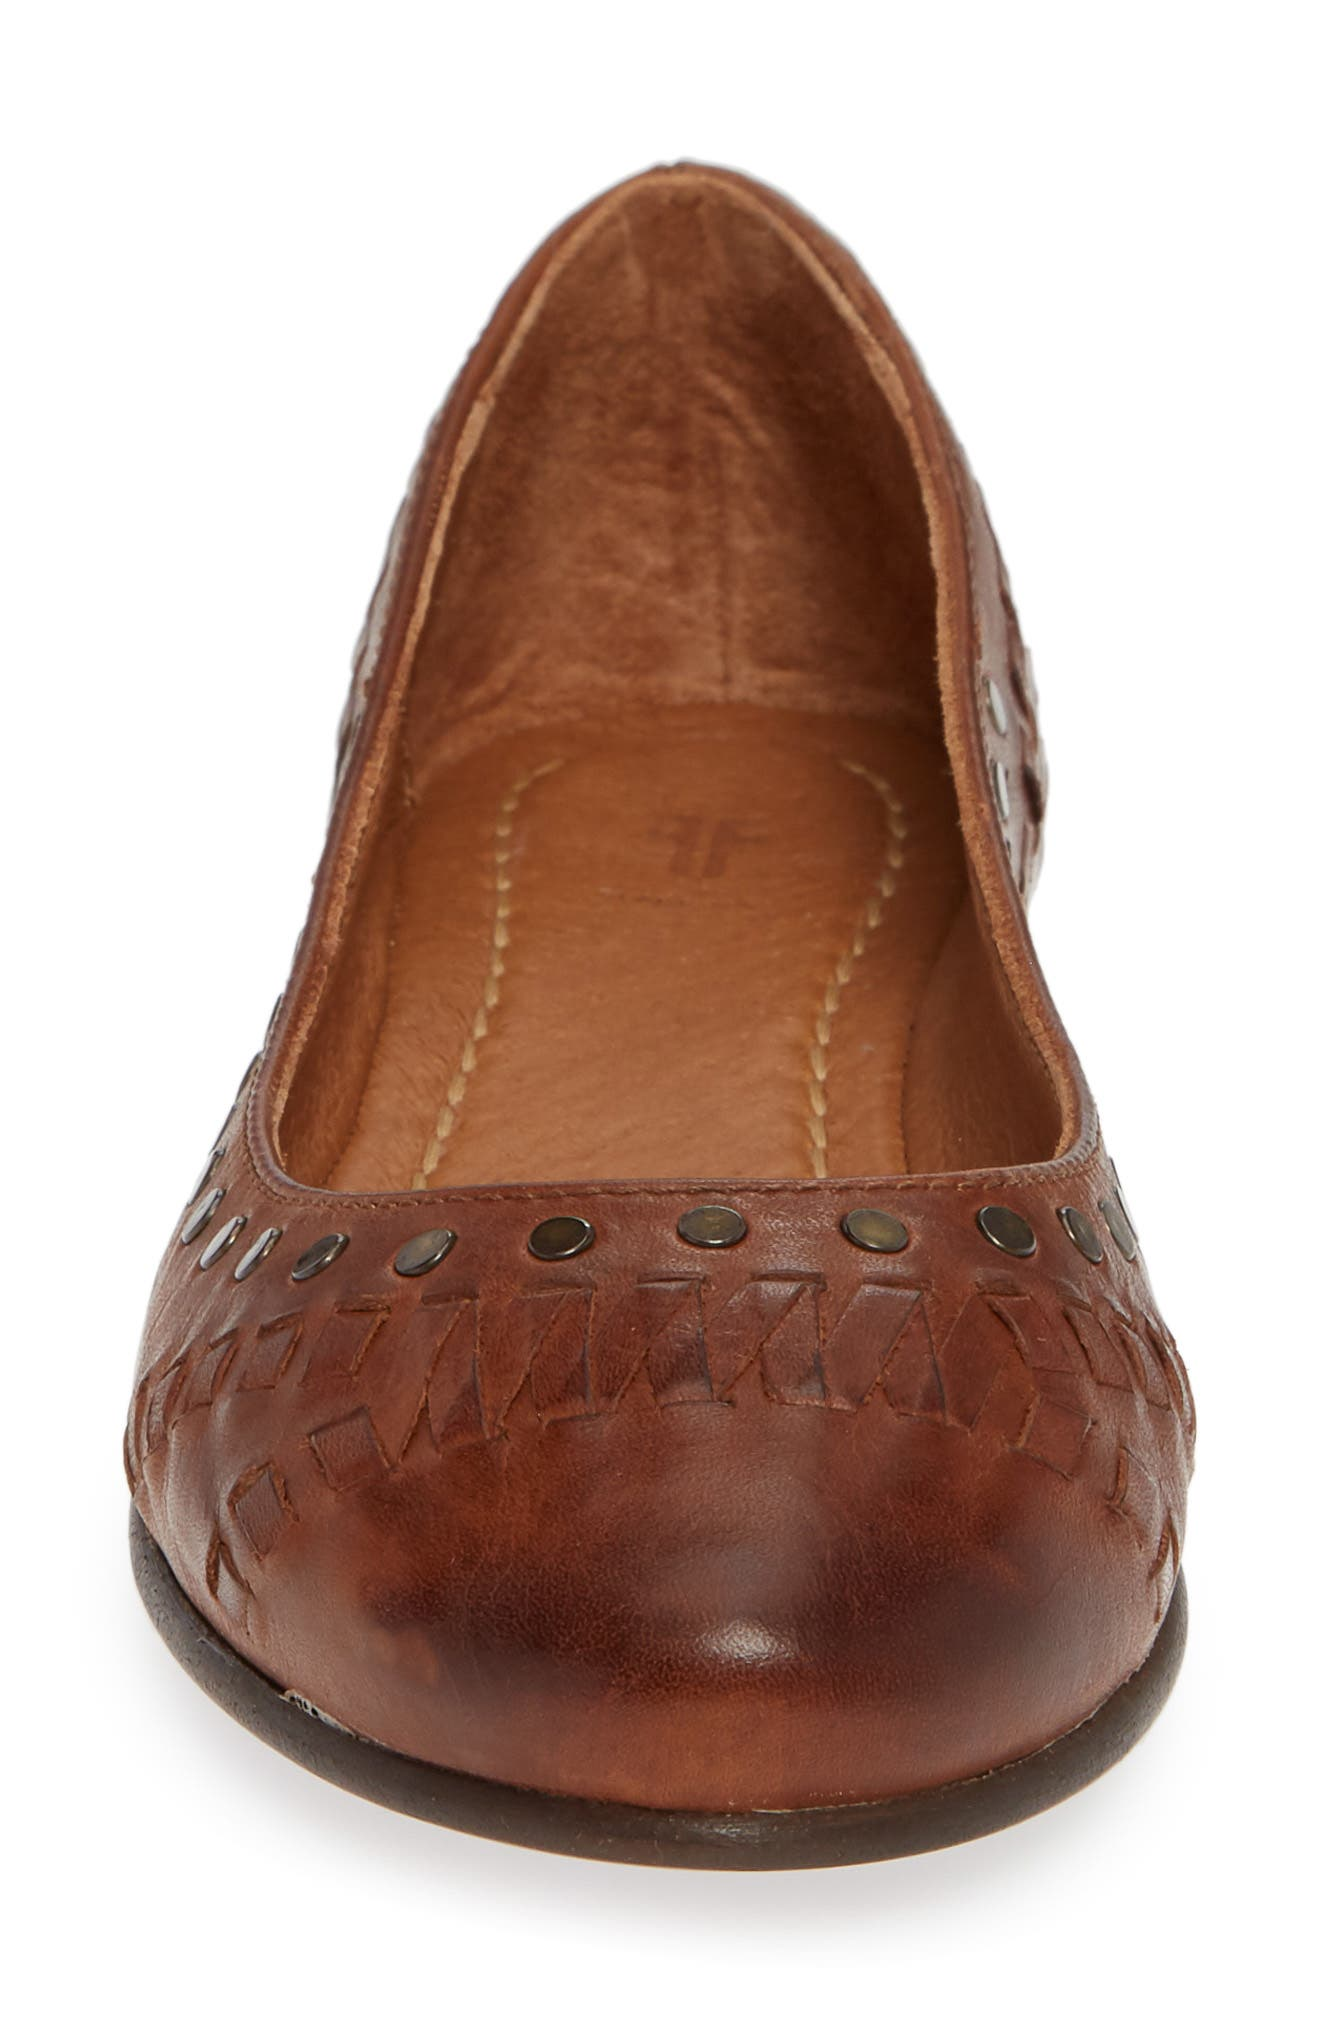 Carson Whipstitch Ballet Flat,                             Alternate thumbnail 4, color,                             COGNAC LEATHER